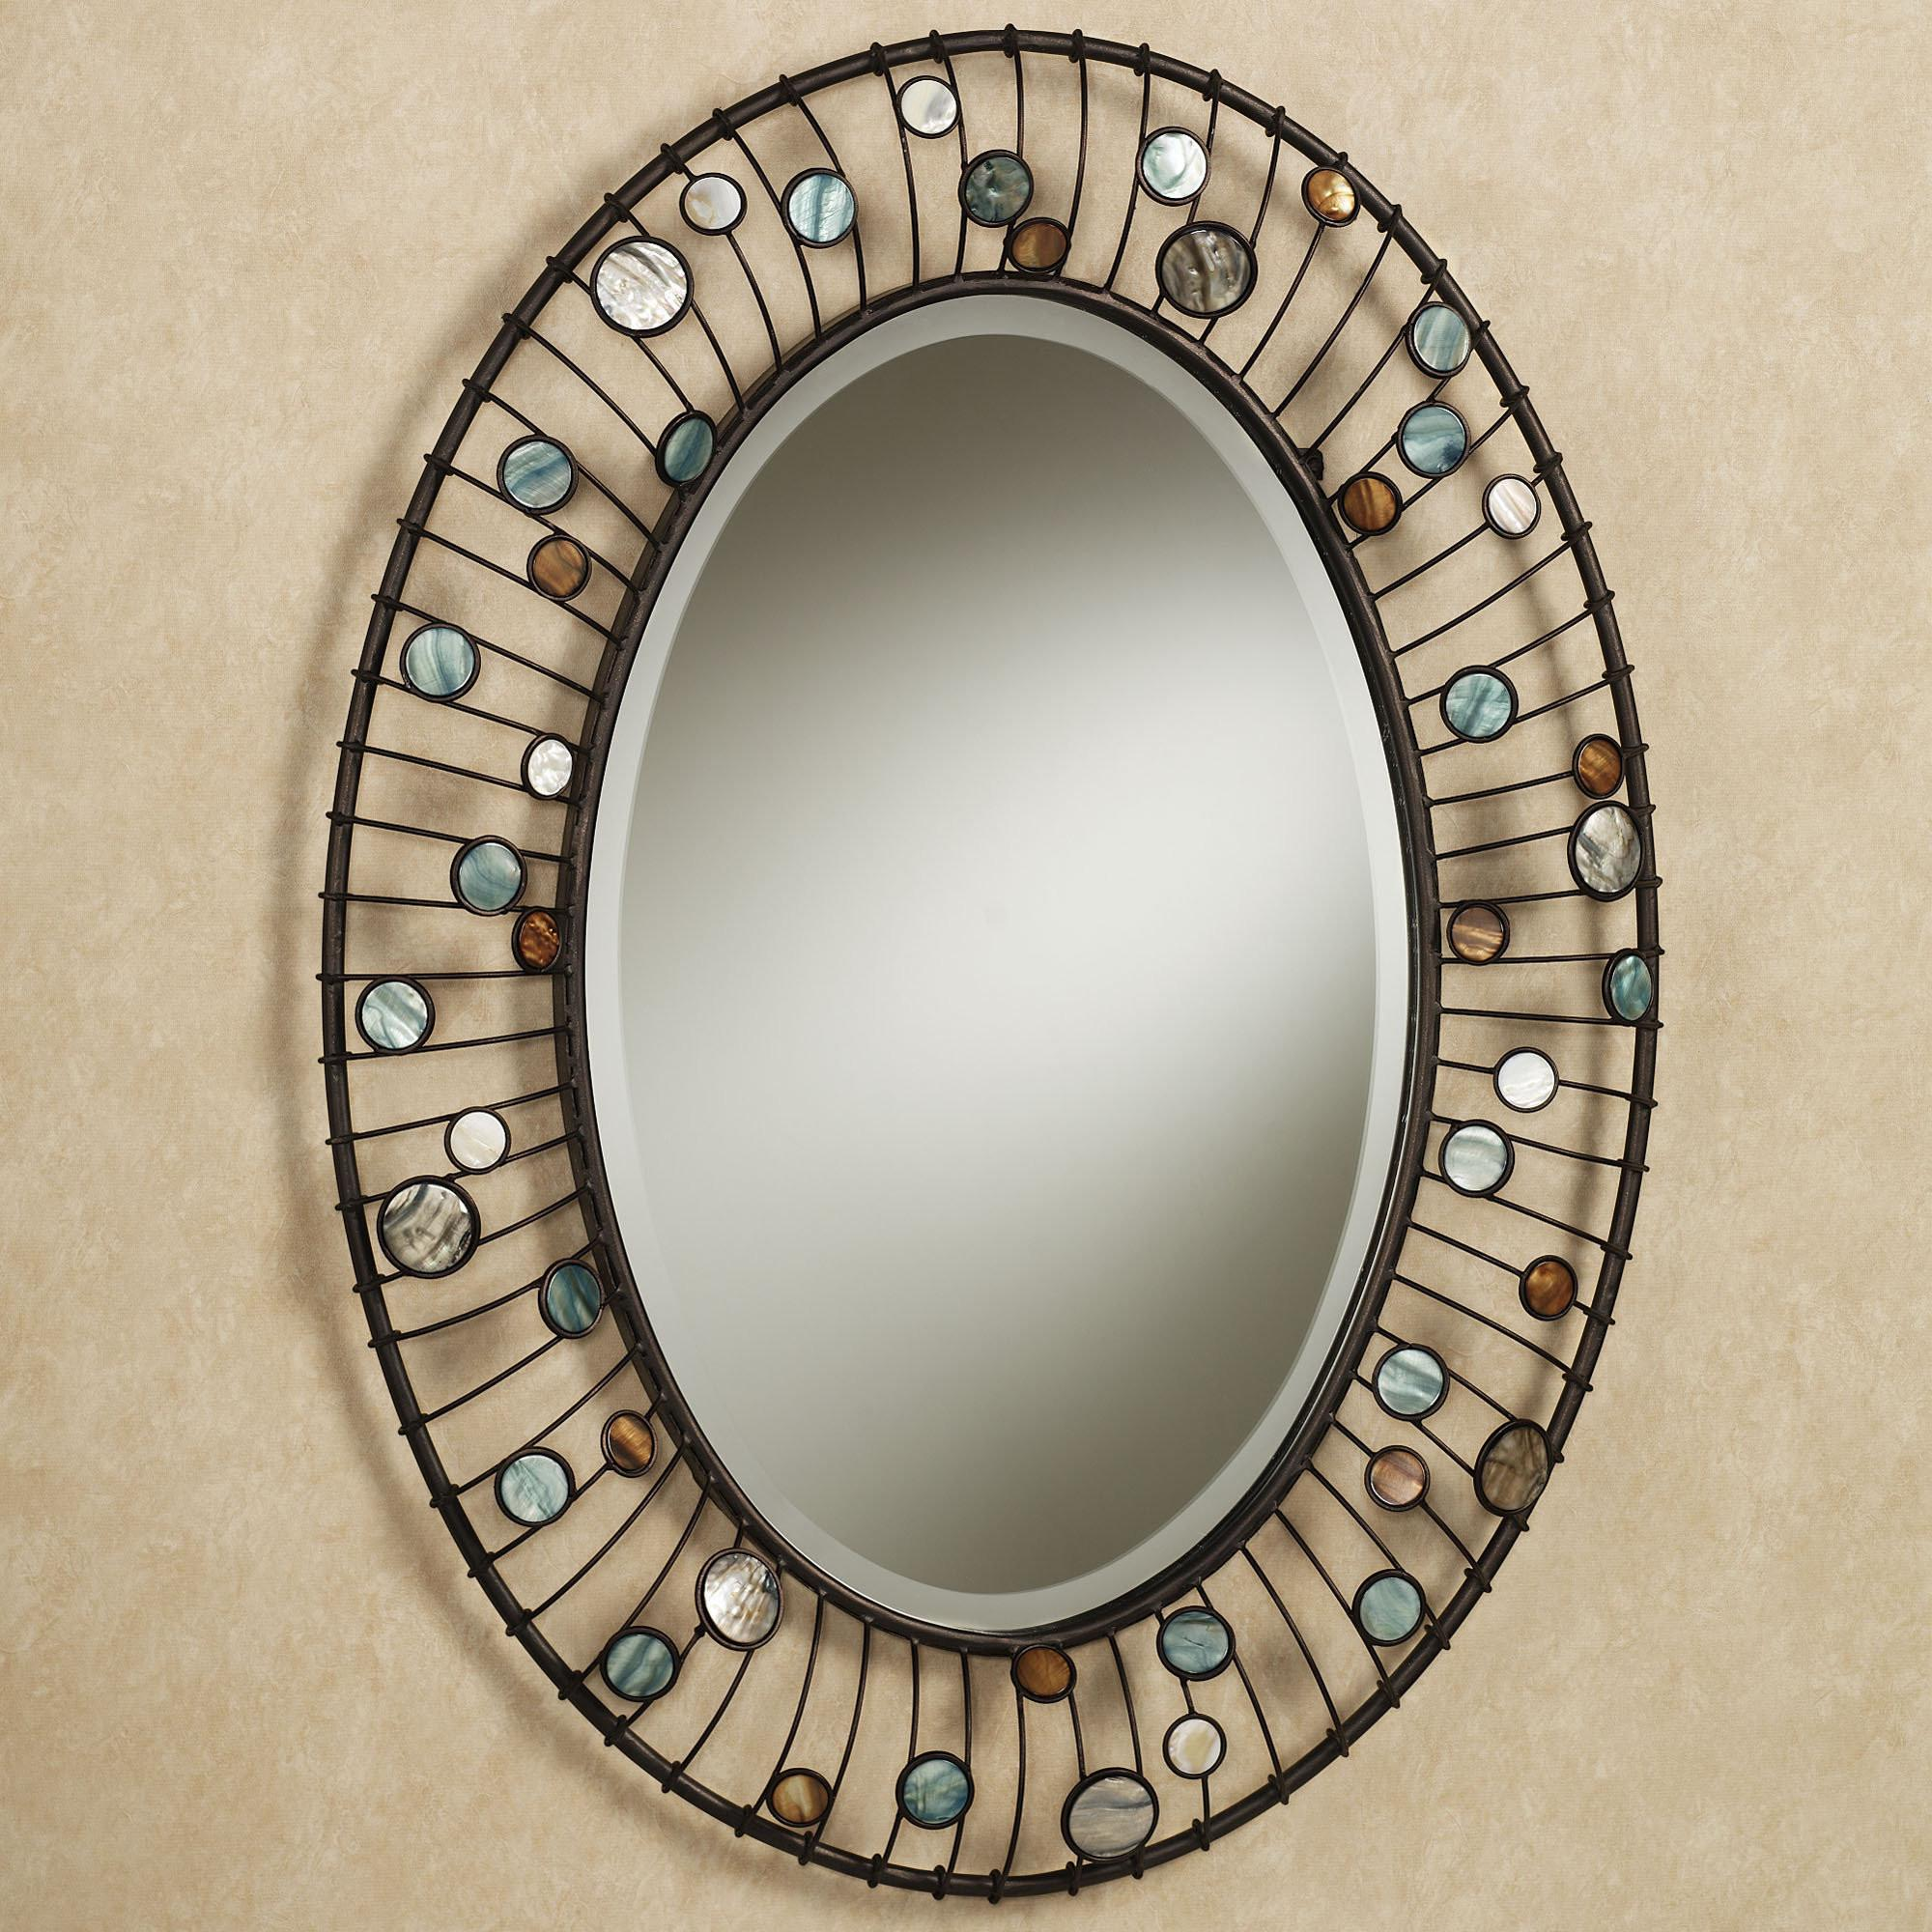 100 Oval Bathroom Wall Mirrors Uttermost Frameless